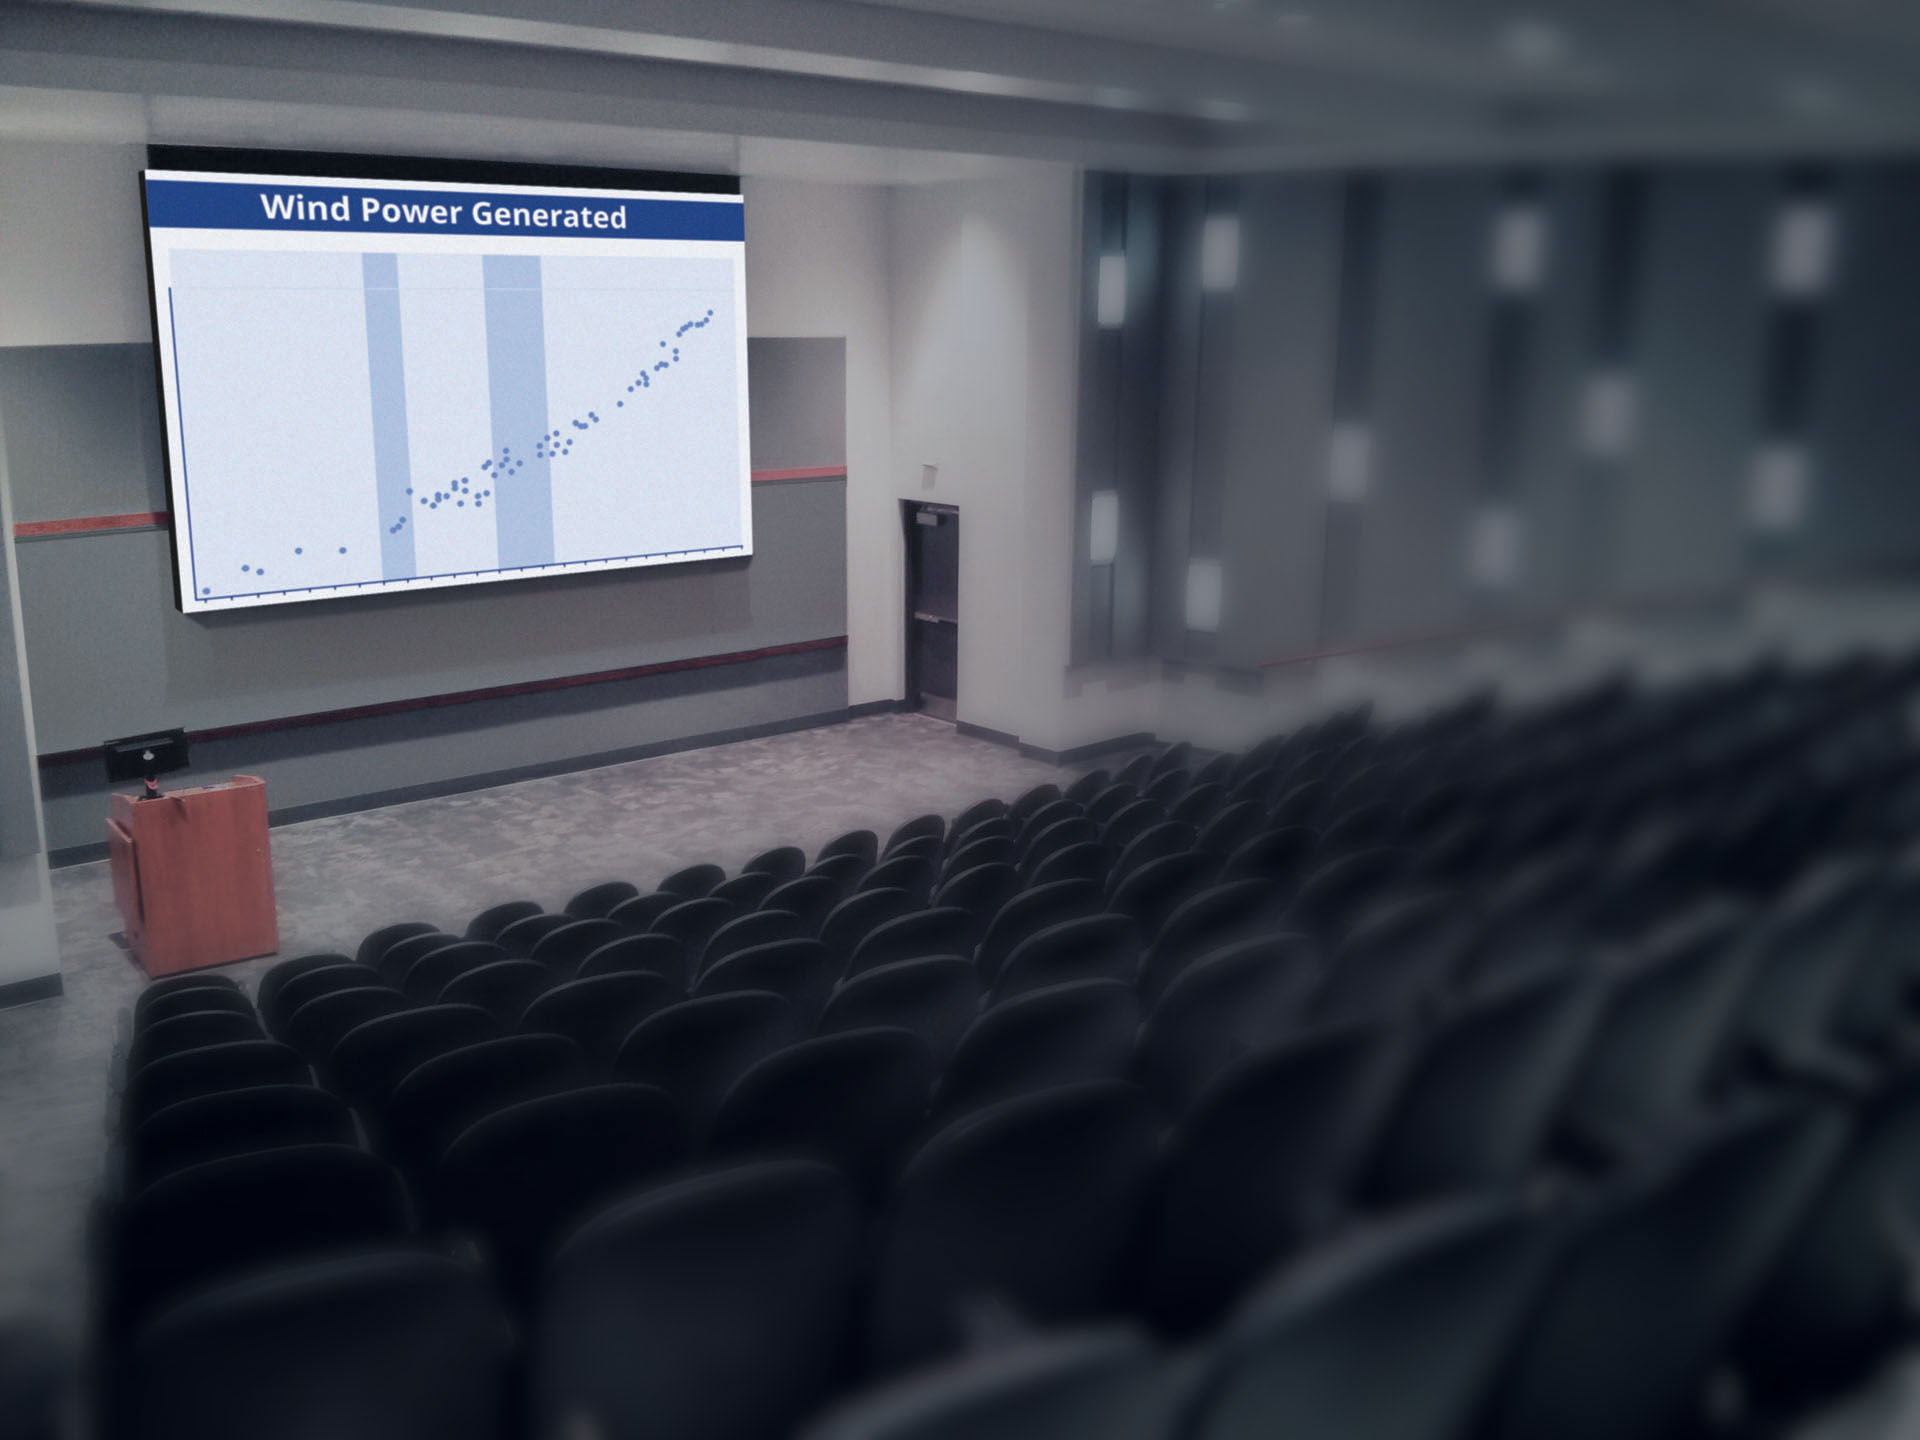 Educational facilities are a great fit for ImageCell indoor LED screens. LED will out-perform expensive projection systems in almost any environment.